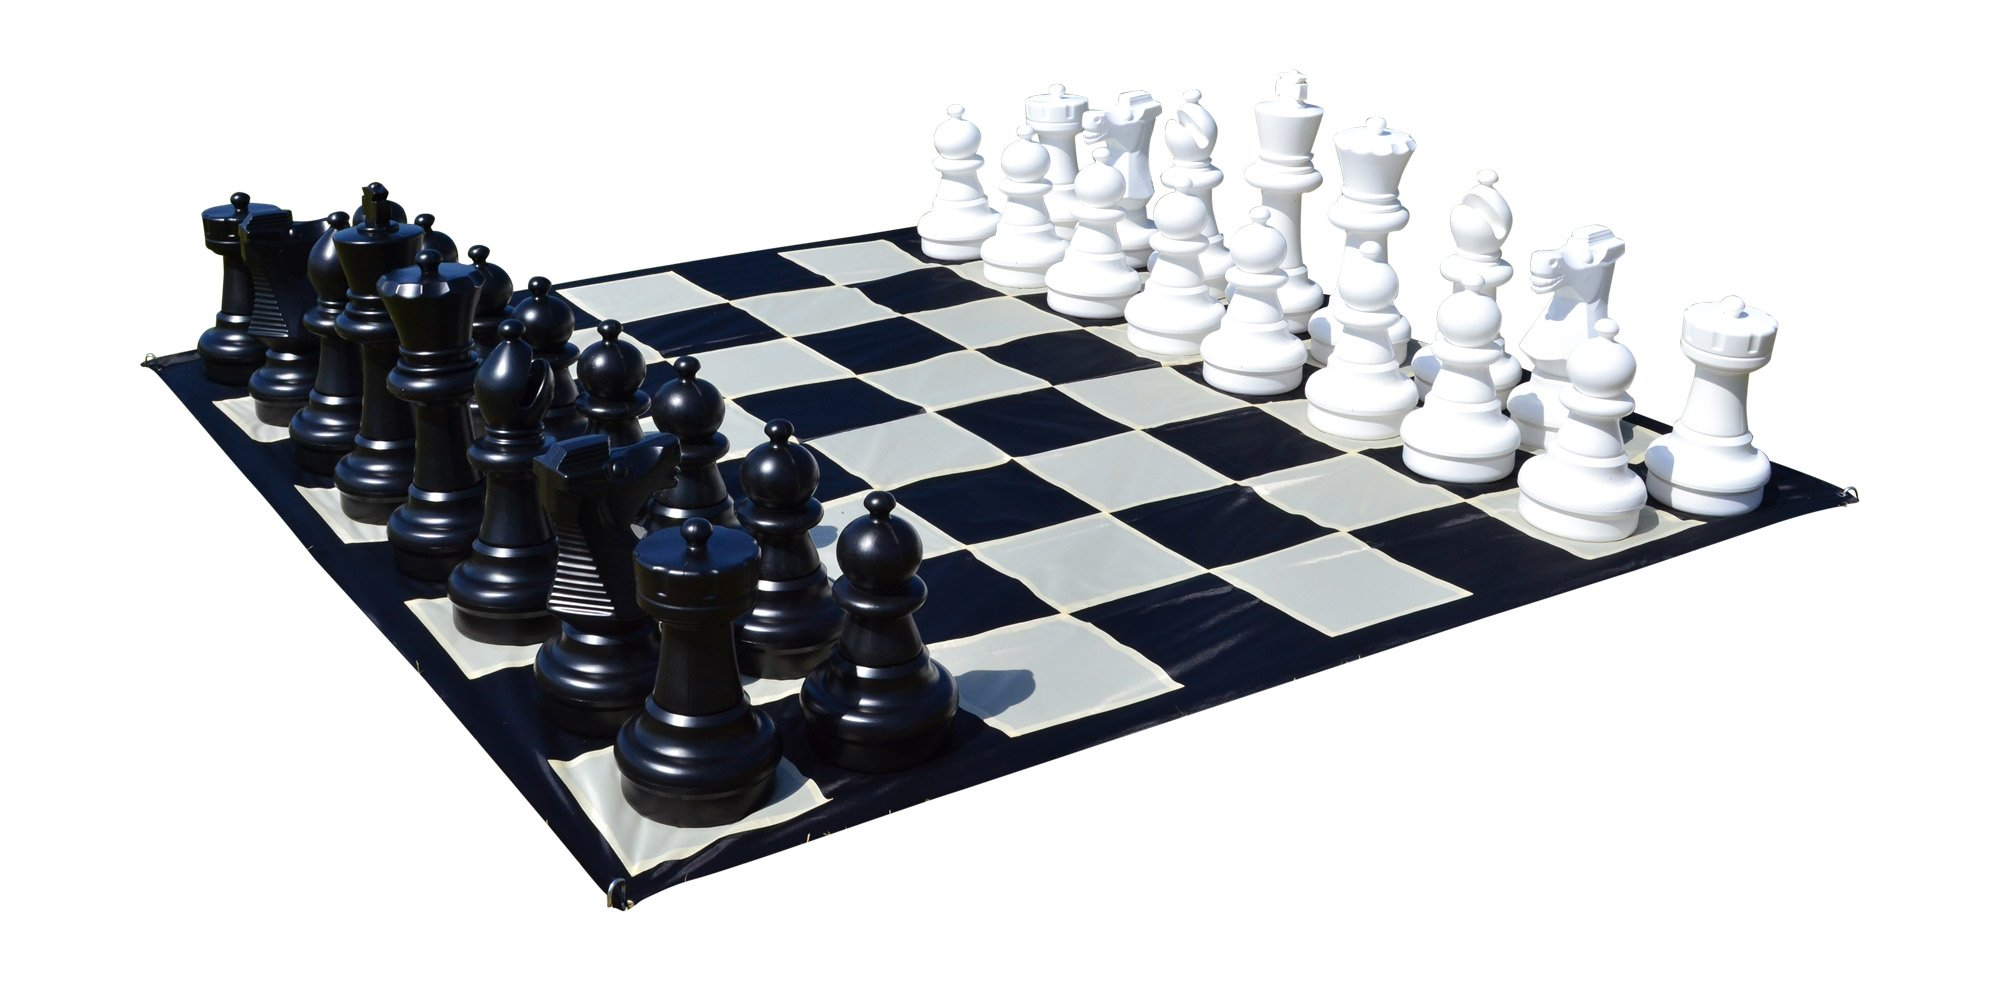 MegaChess Giant Premium Chess Complete Set with 25 Inch Tall King - Black and White by MegaChess